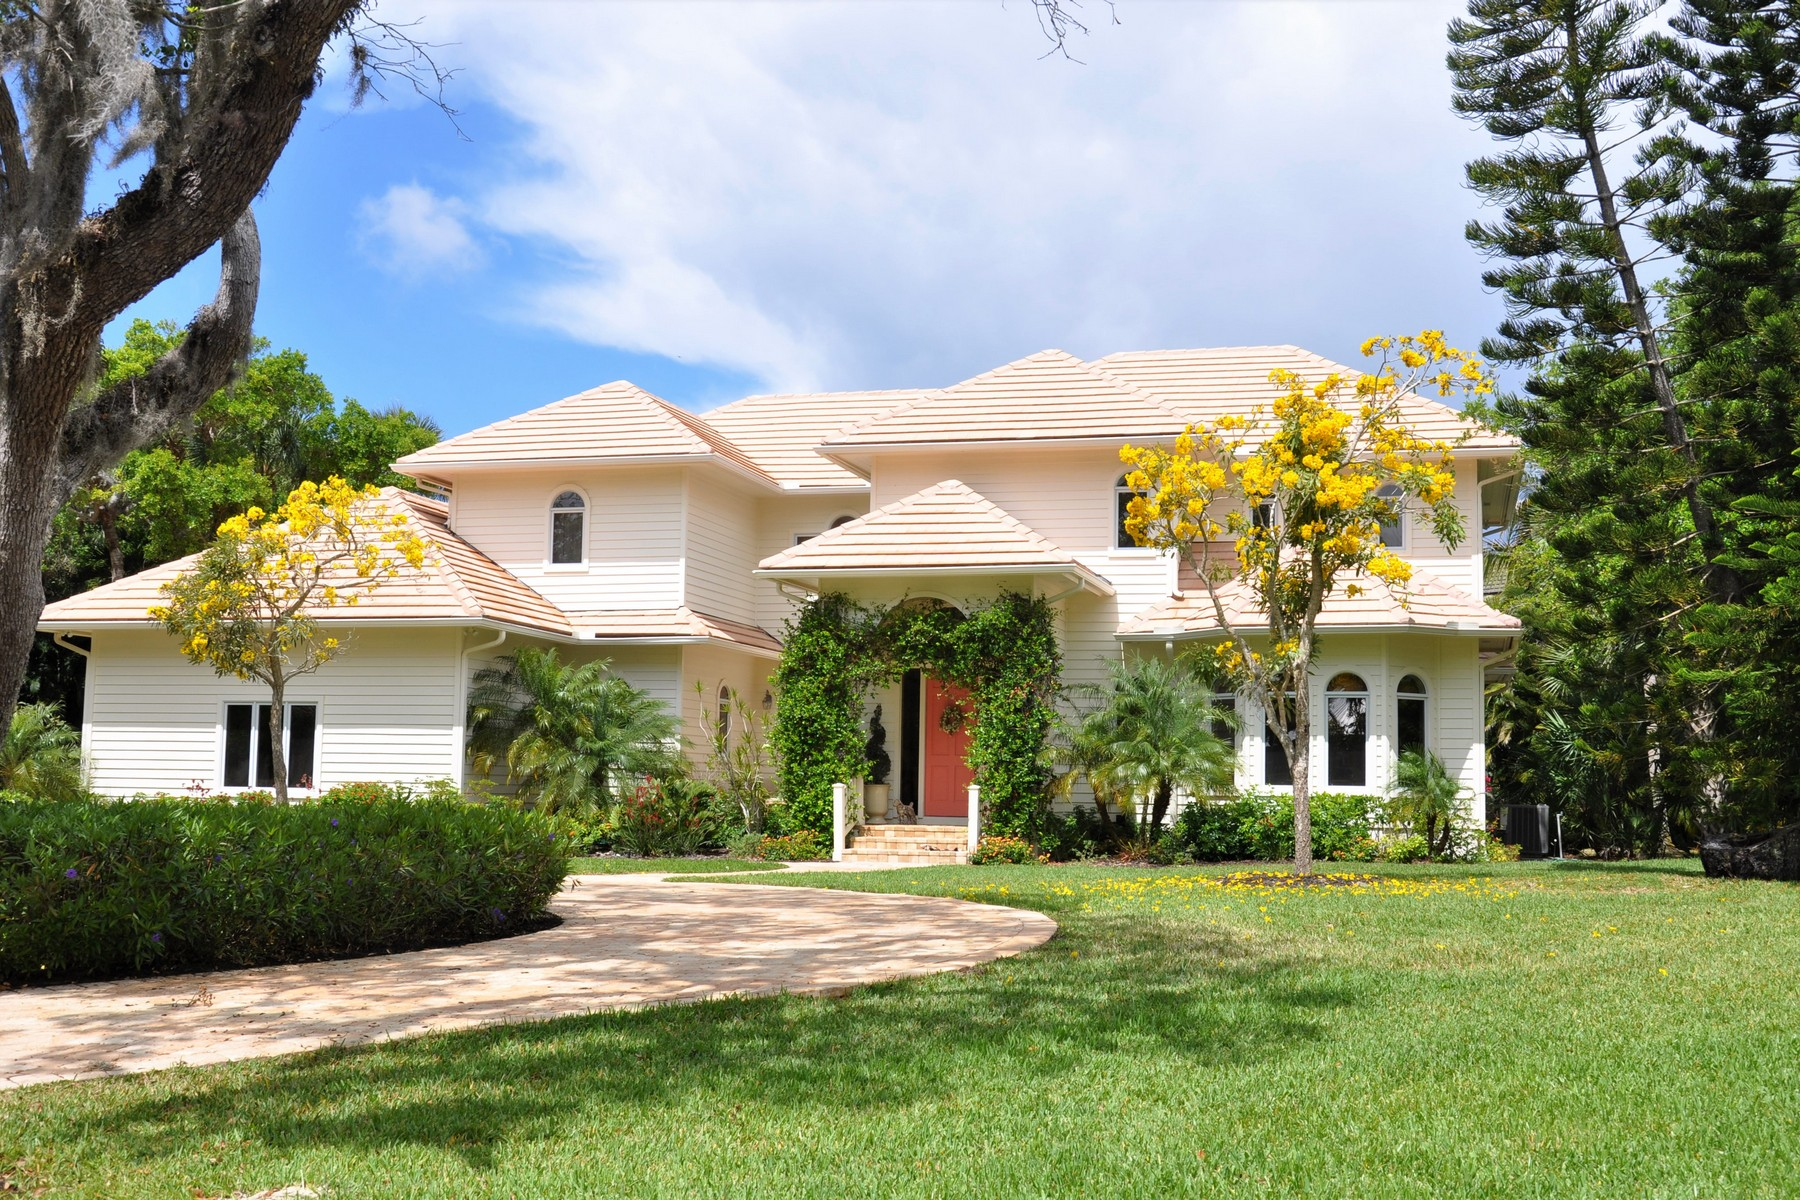 Property for Sale at Southern Elegance and Charm 571 N Sundance Trail Vero Beach, Florida 32963 United States